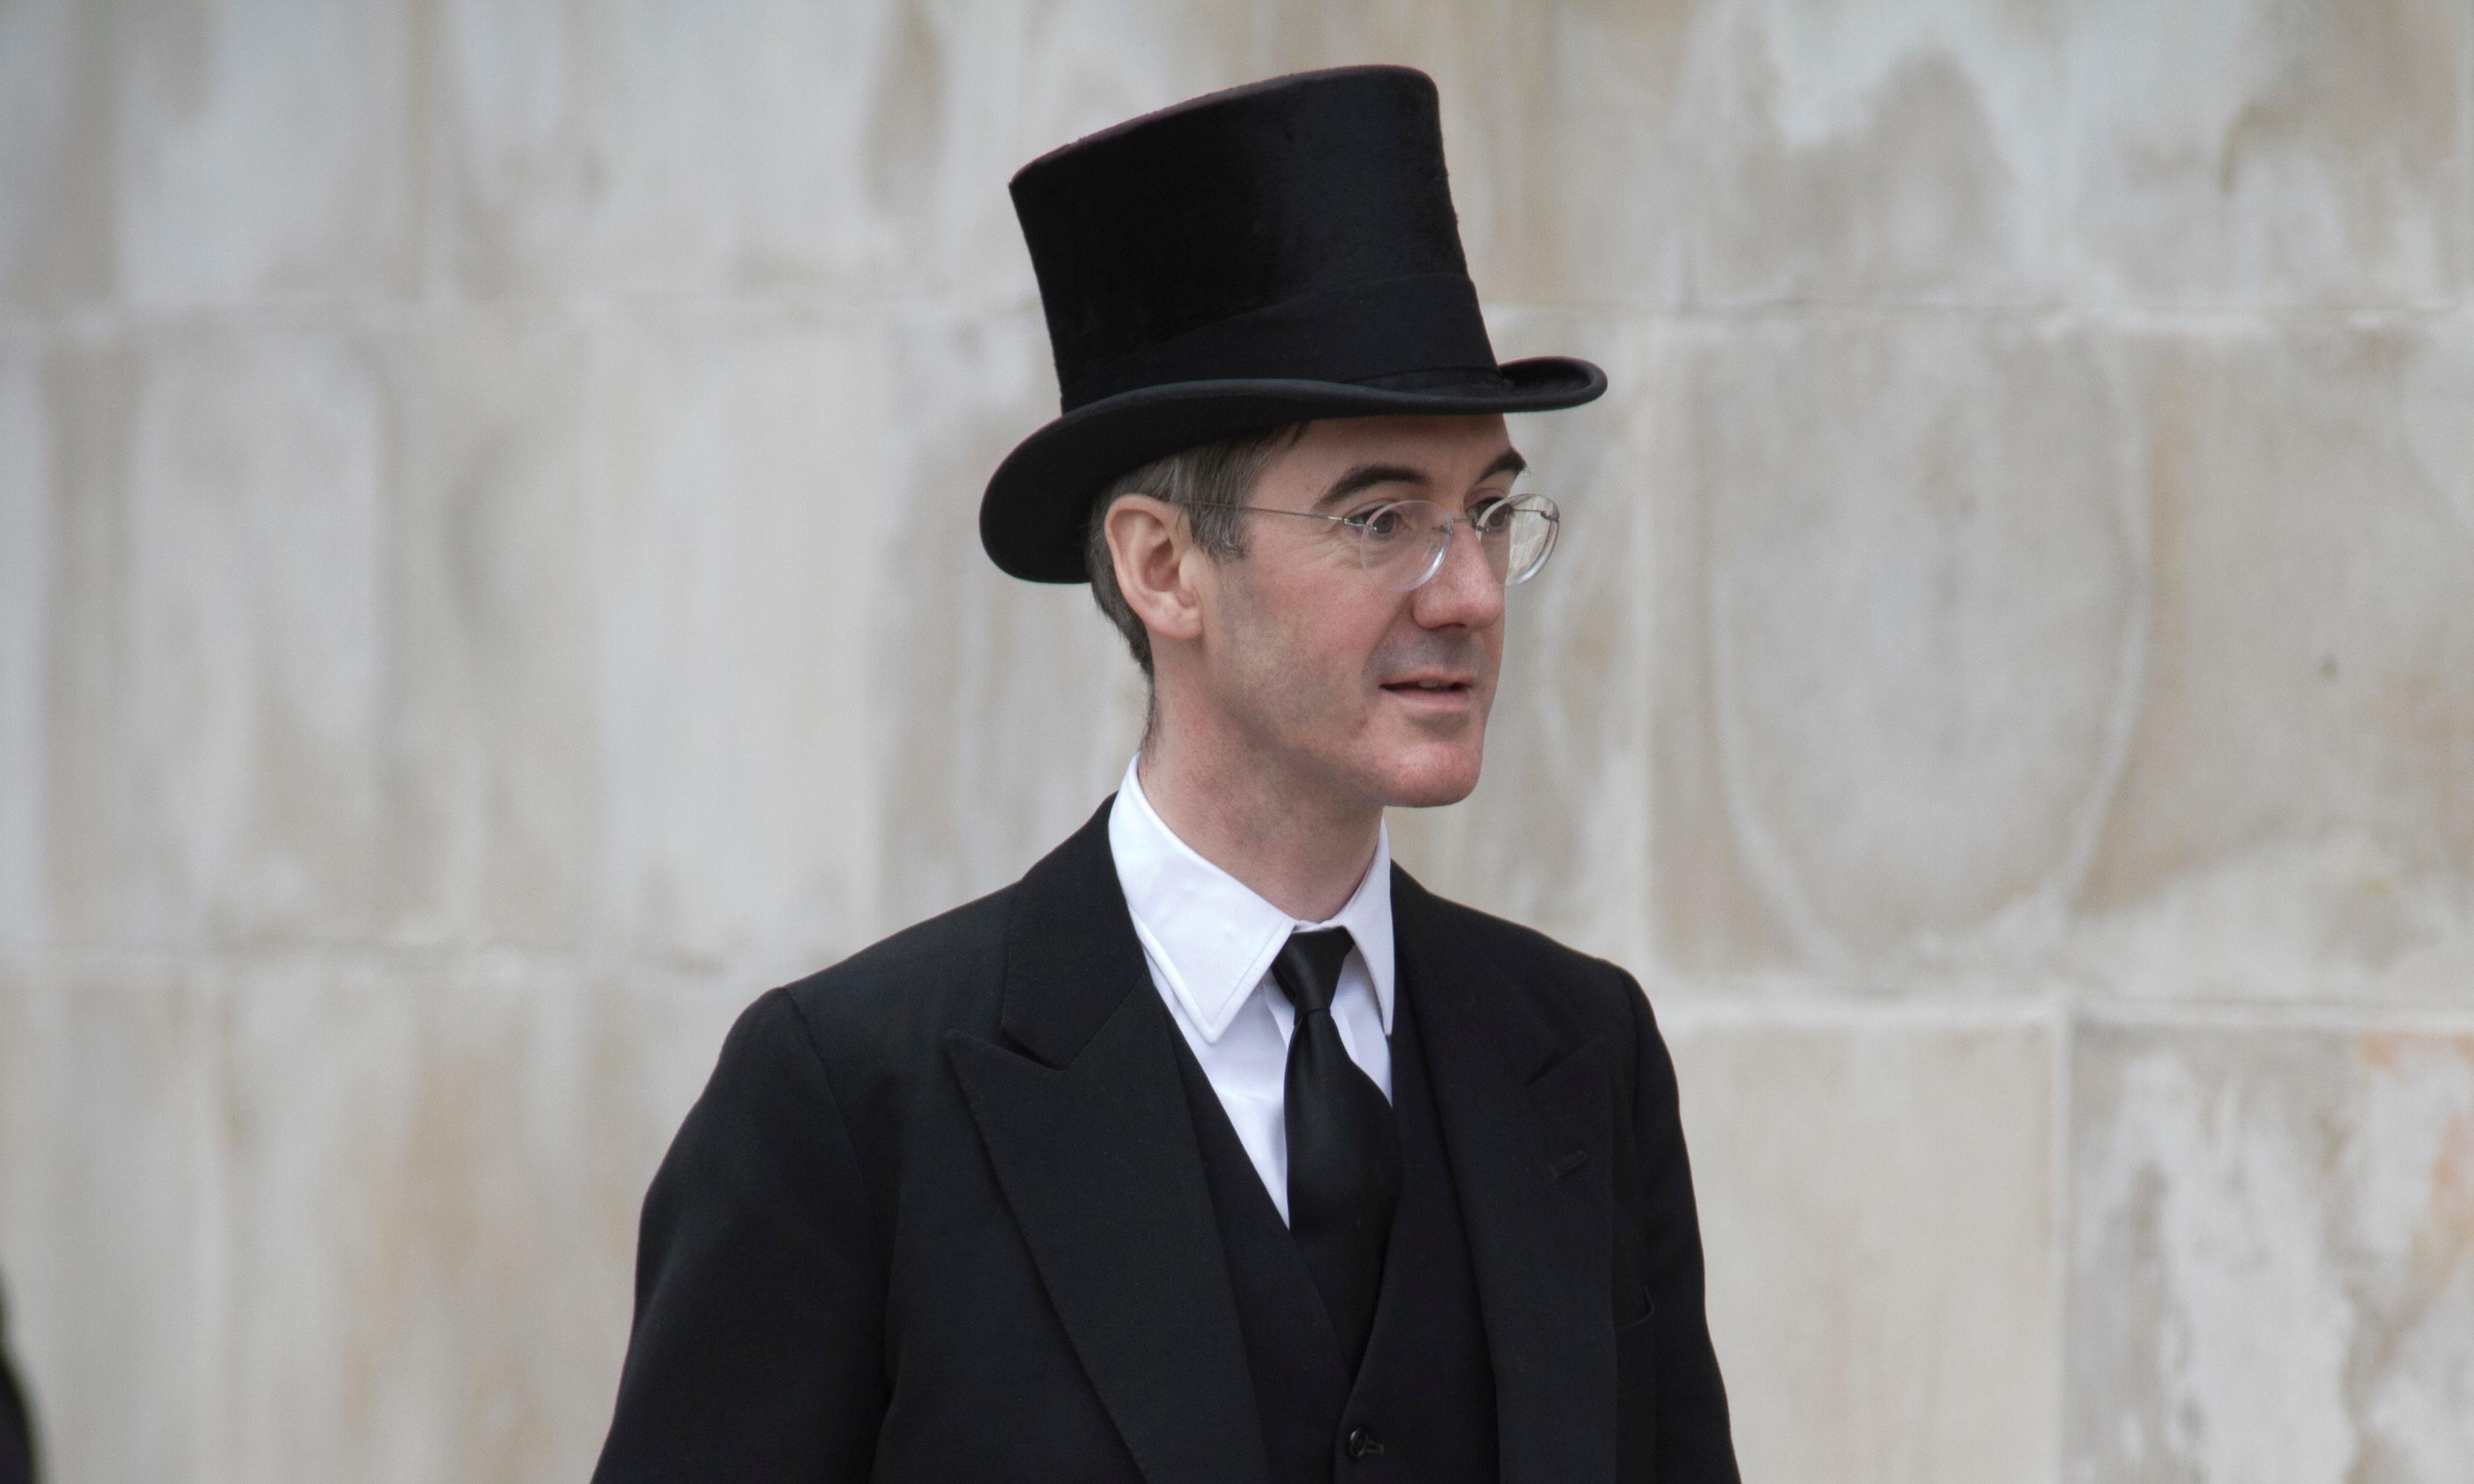 Rees-Mogg's book is 'sentimental jingoism and empire nostalgia'